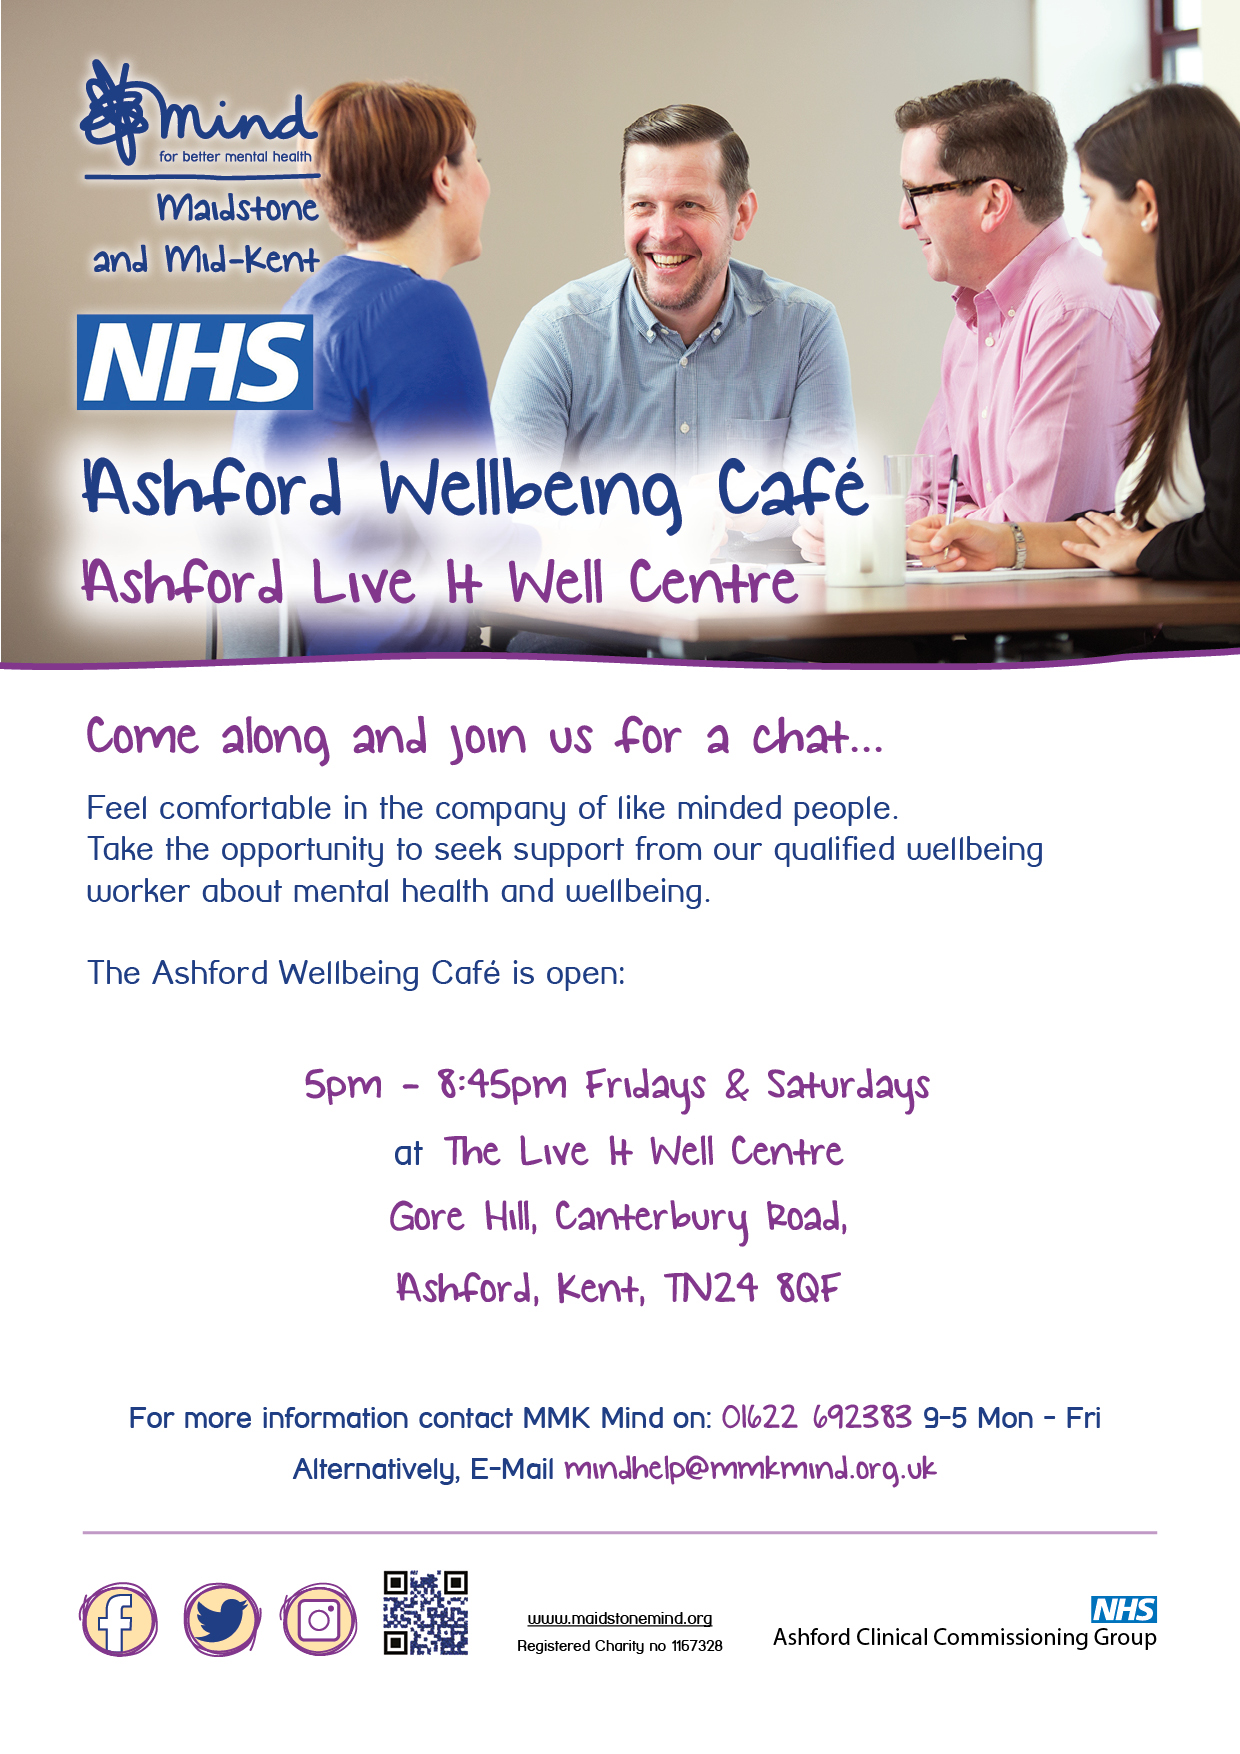 Ashford Wellbeing Café Ashford Live It Well Centre Come along and join us for a chat... Feel comfortable in the company of like minded people. Take the opportunity to seek support from our qualified wellbeing worker about mental health and wellbeing.  The Ashford Wellbeing Café is open: 5pm - 8:45pm Fridays & Saturdays at The Live It Well Centre Gore Hill, Canterbury Road, Ashford, Kent, TN24 8QF For more information contact MMK Mind on: 01622 692383 9-5 Mon - Fri Alternatively, E-Mail mindhelp@mmkmind.org.uk